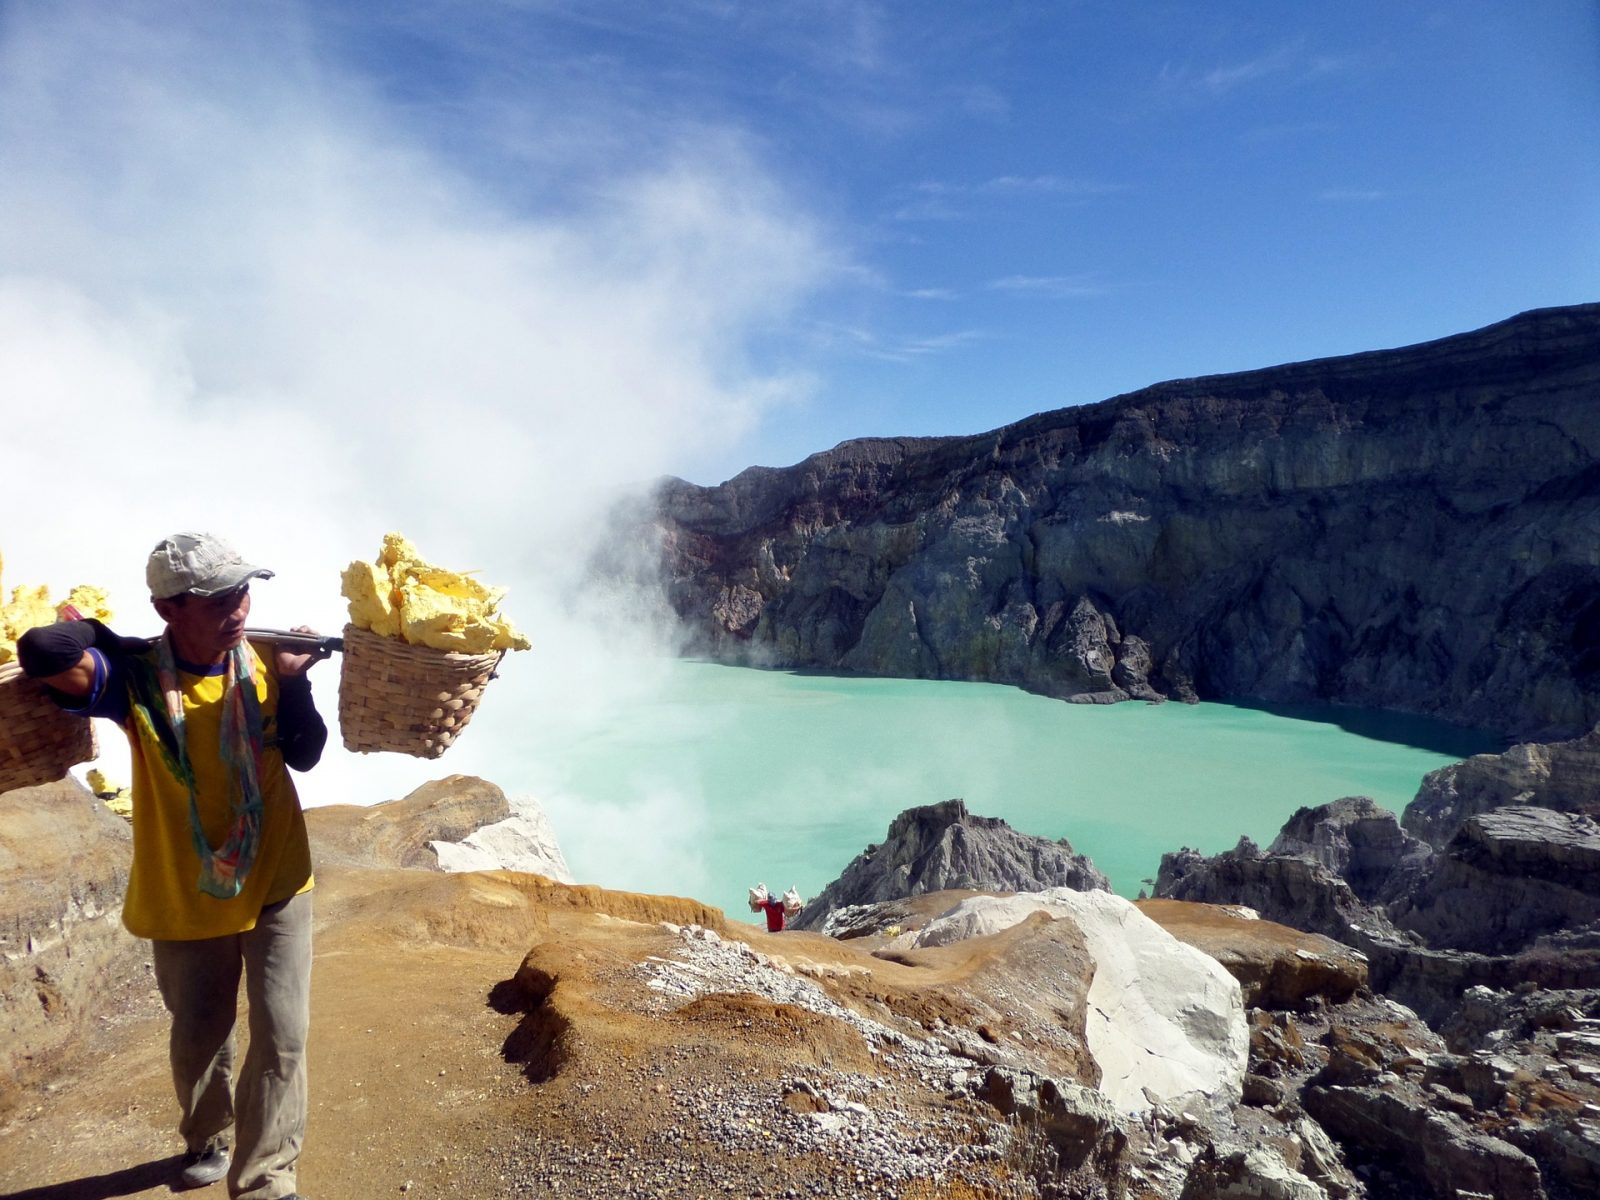 Miners at Ijen Crater, East Java, Indonesia